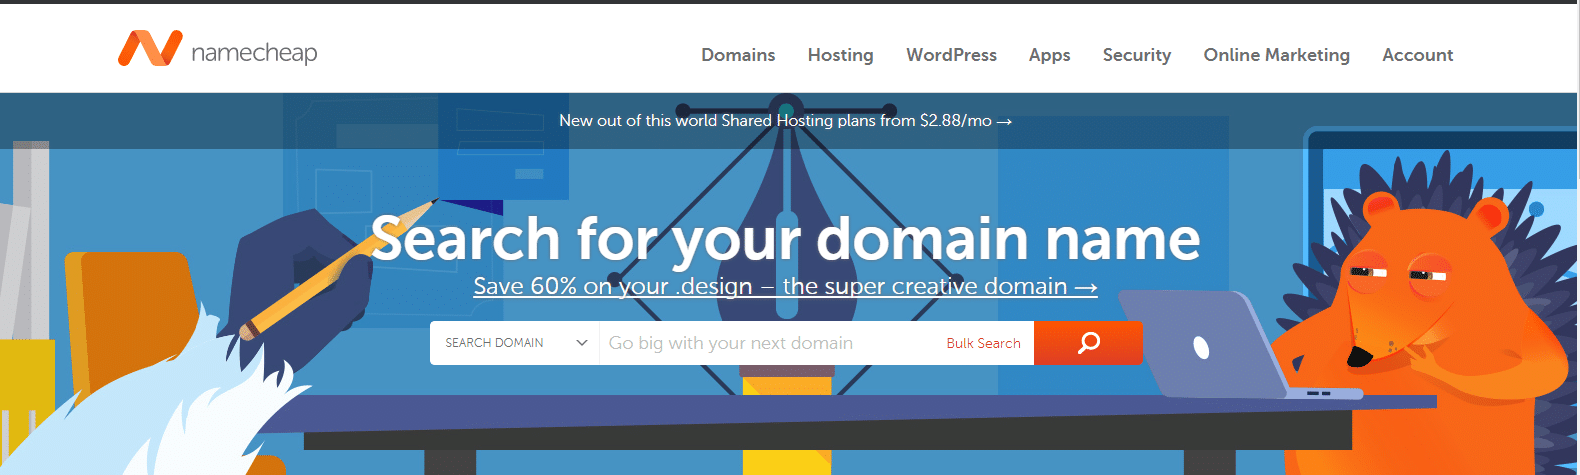 namecheap Best Cheap WordPress Hosting Services for Small Sites